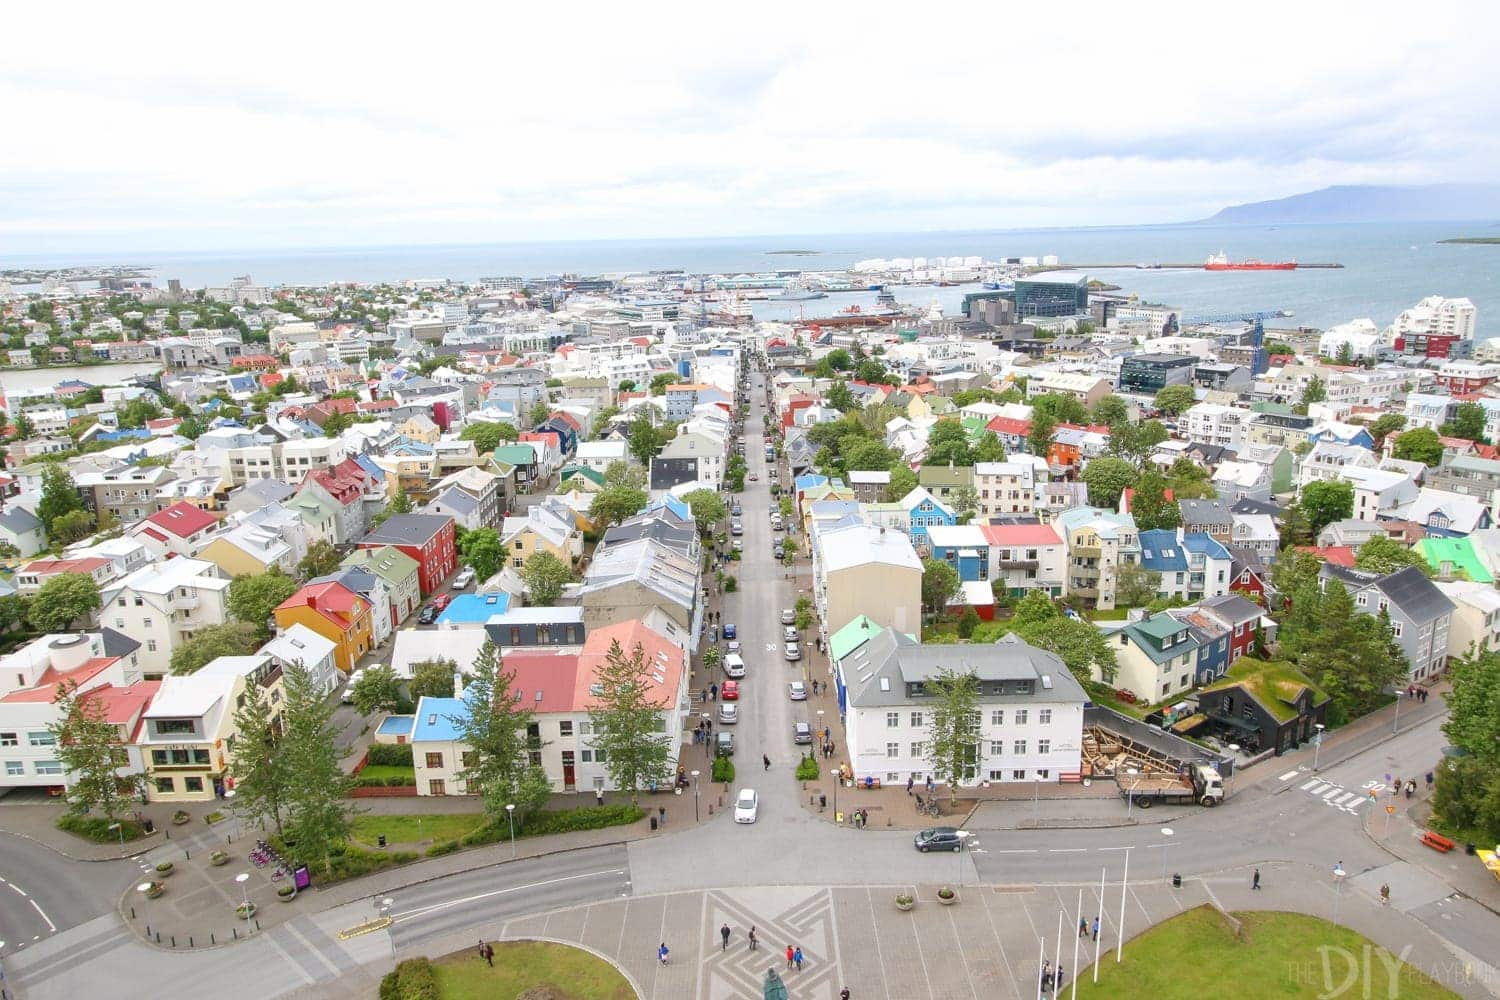 Summer Recap Video: Including our Iceland trip!